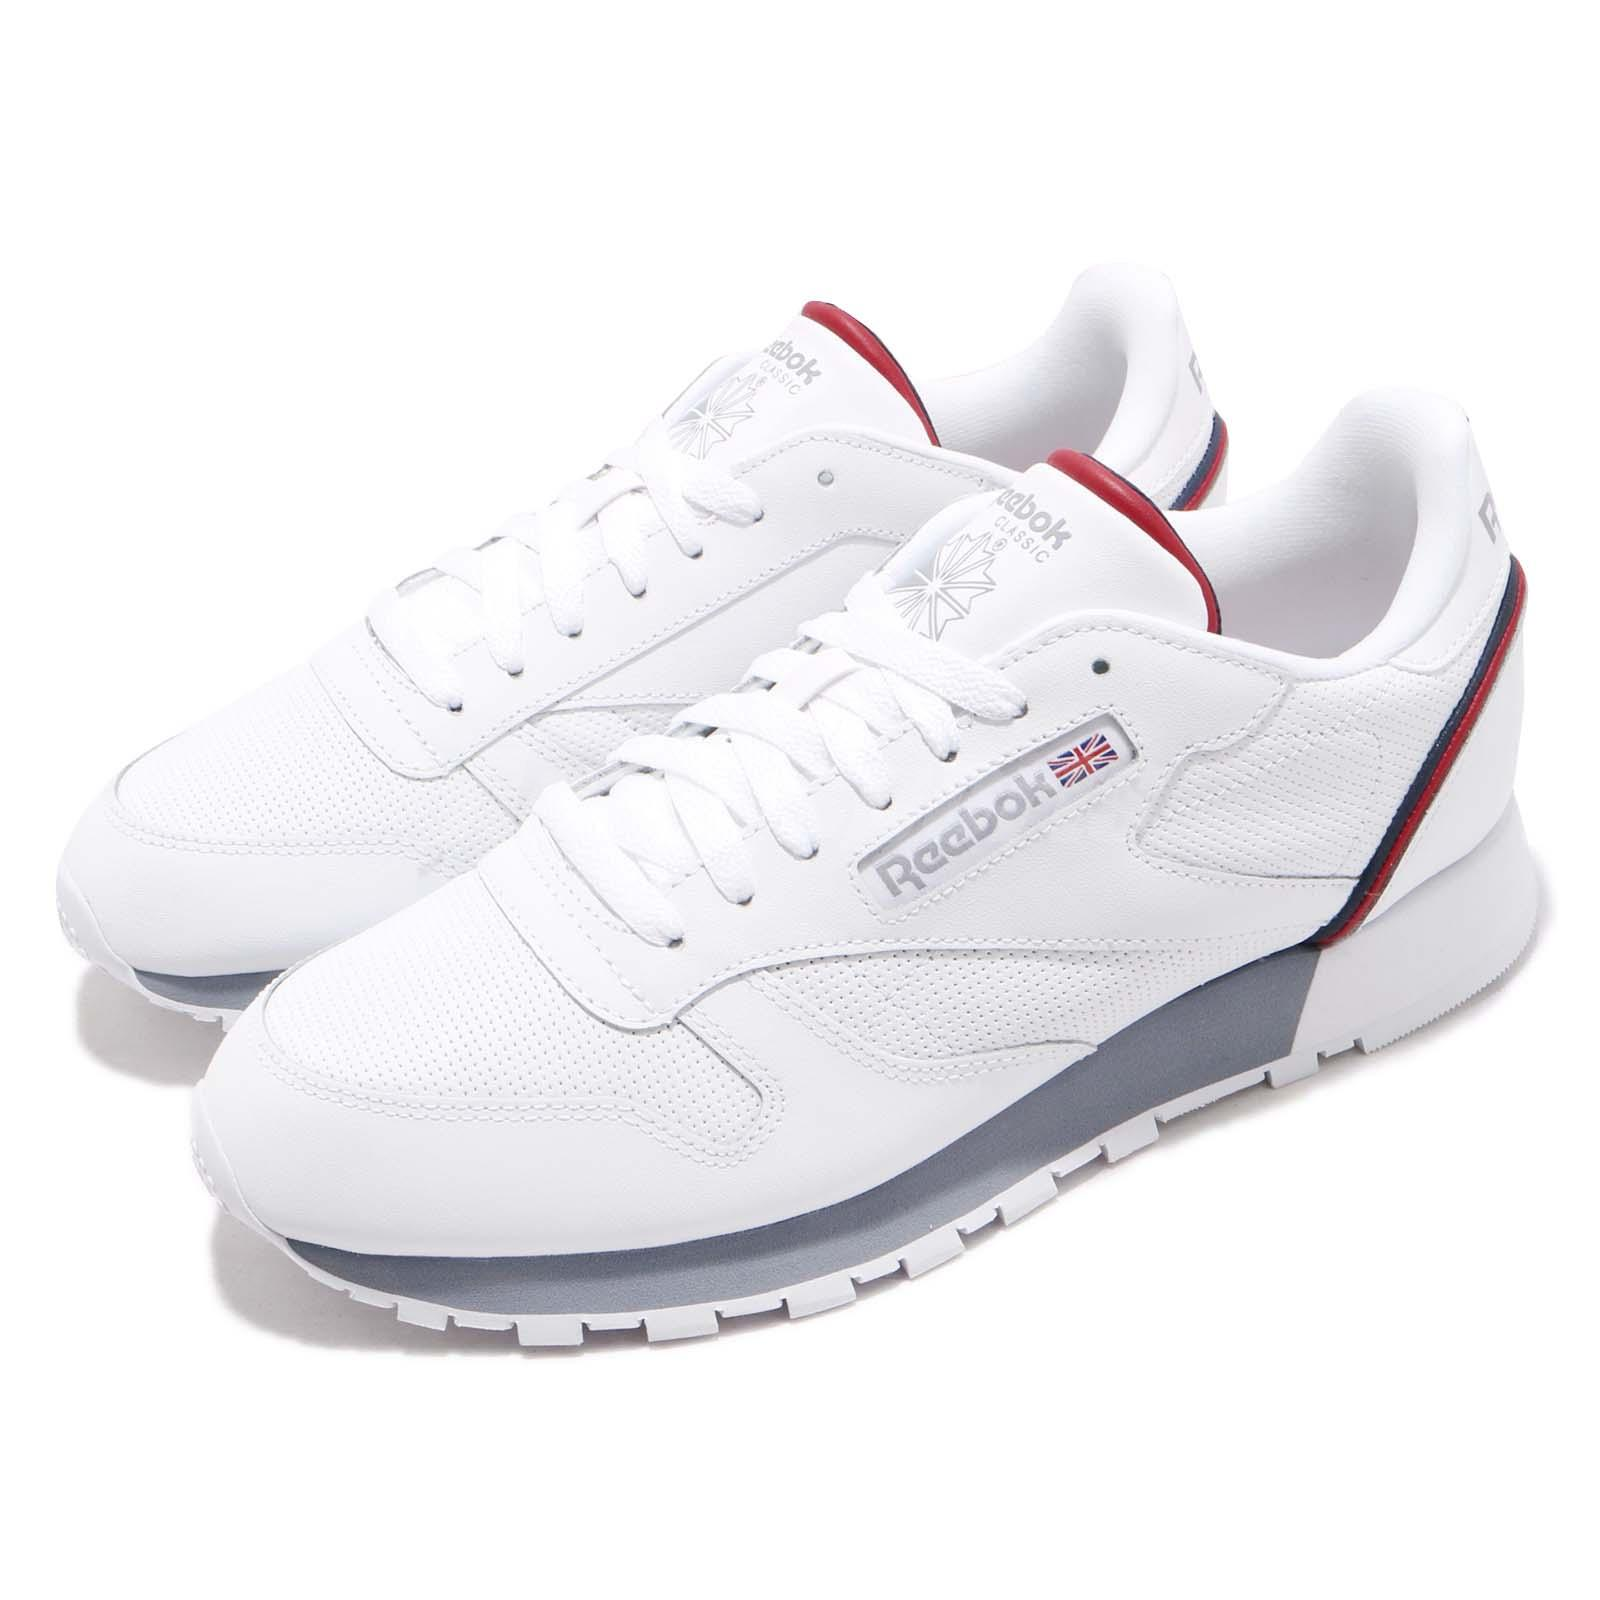 b1090d192f4 Details about Reebok CL Leather MU White Navy Red Men Classic Casual Shoes  Sneakers CN3641